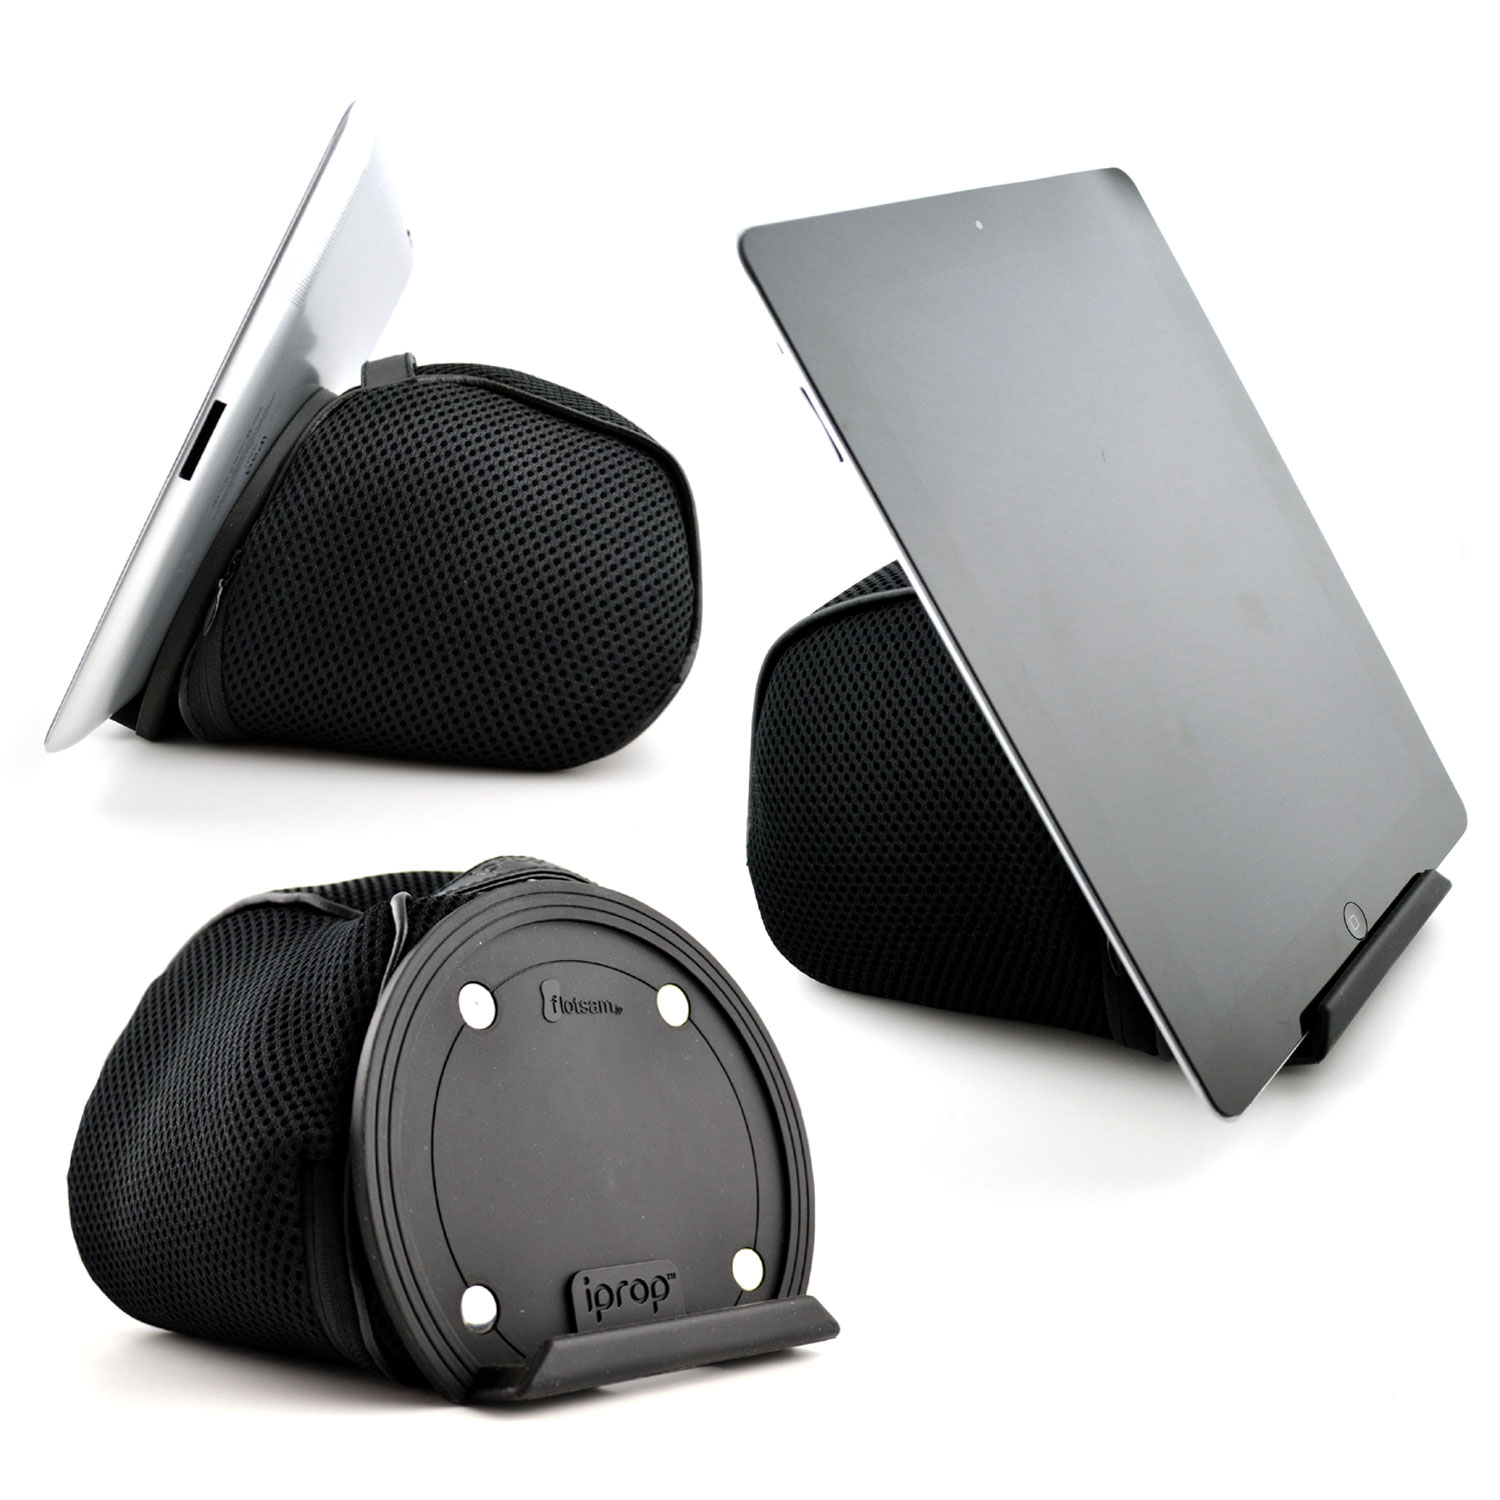 Bed Ipad Holder ipad bed & lap standiprop; bean bag pillow universal tablet